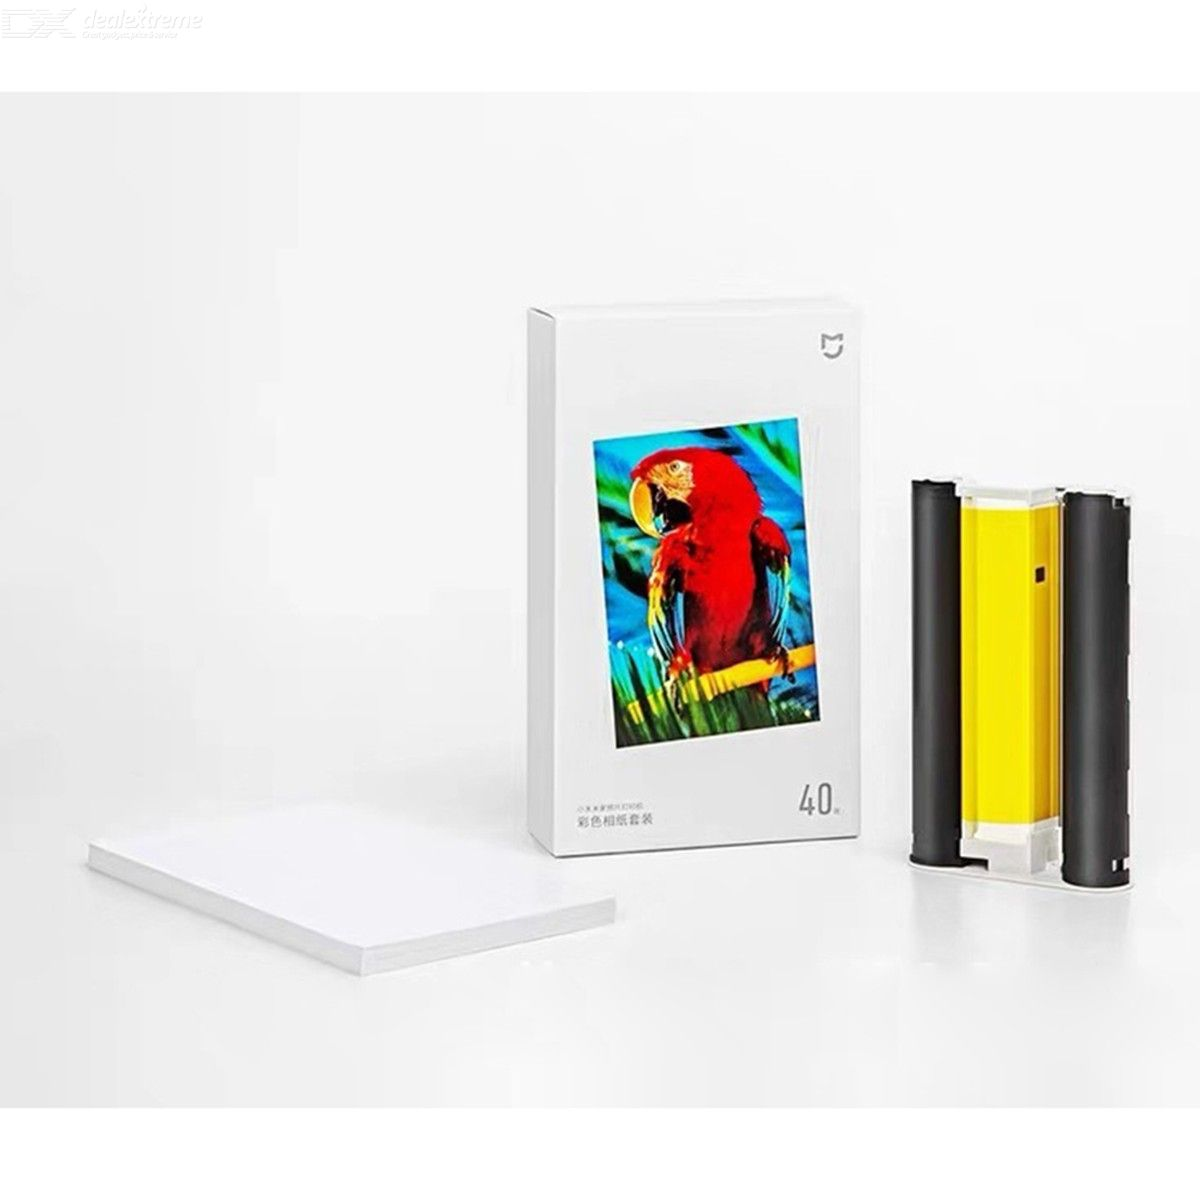 Xiaomi Mijia Photo Print Paper For Mobile Mini Photo Printer - 40 Sheets 6 Inches